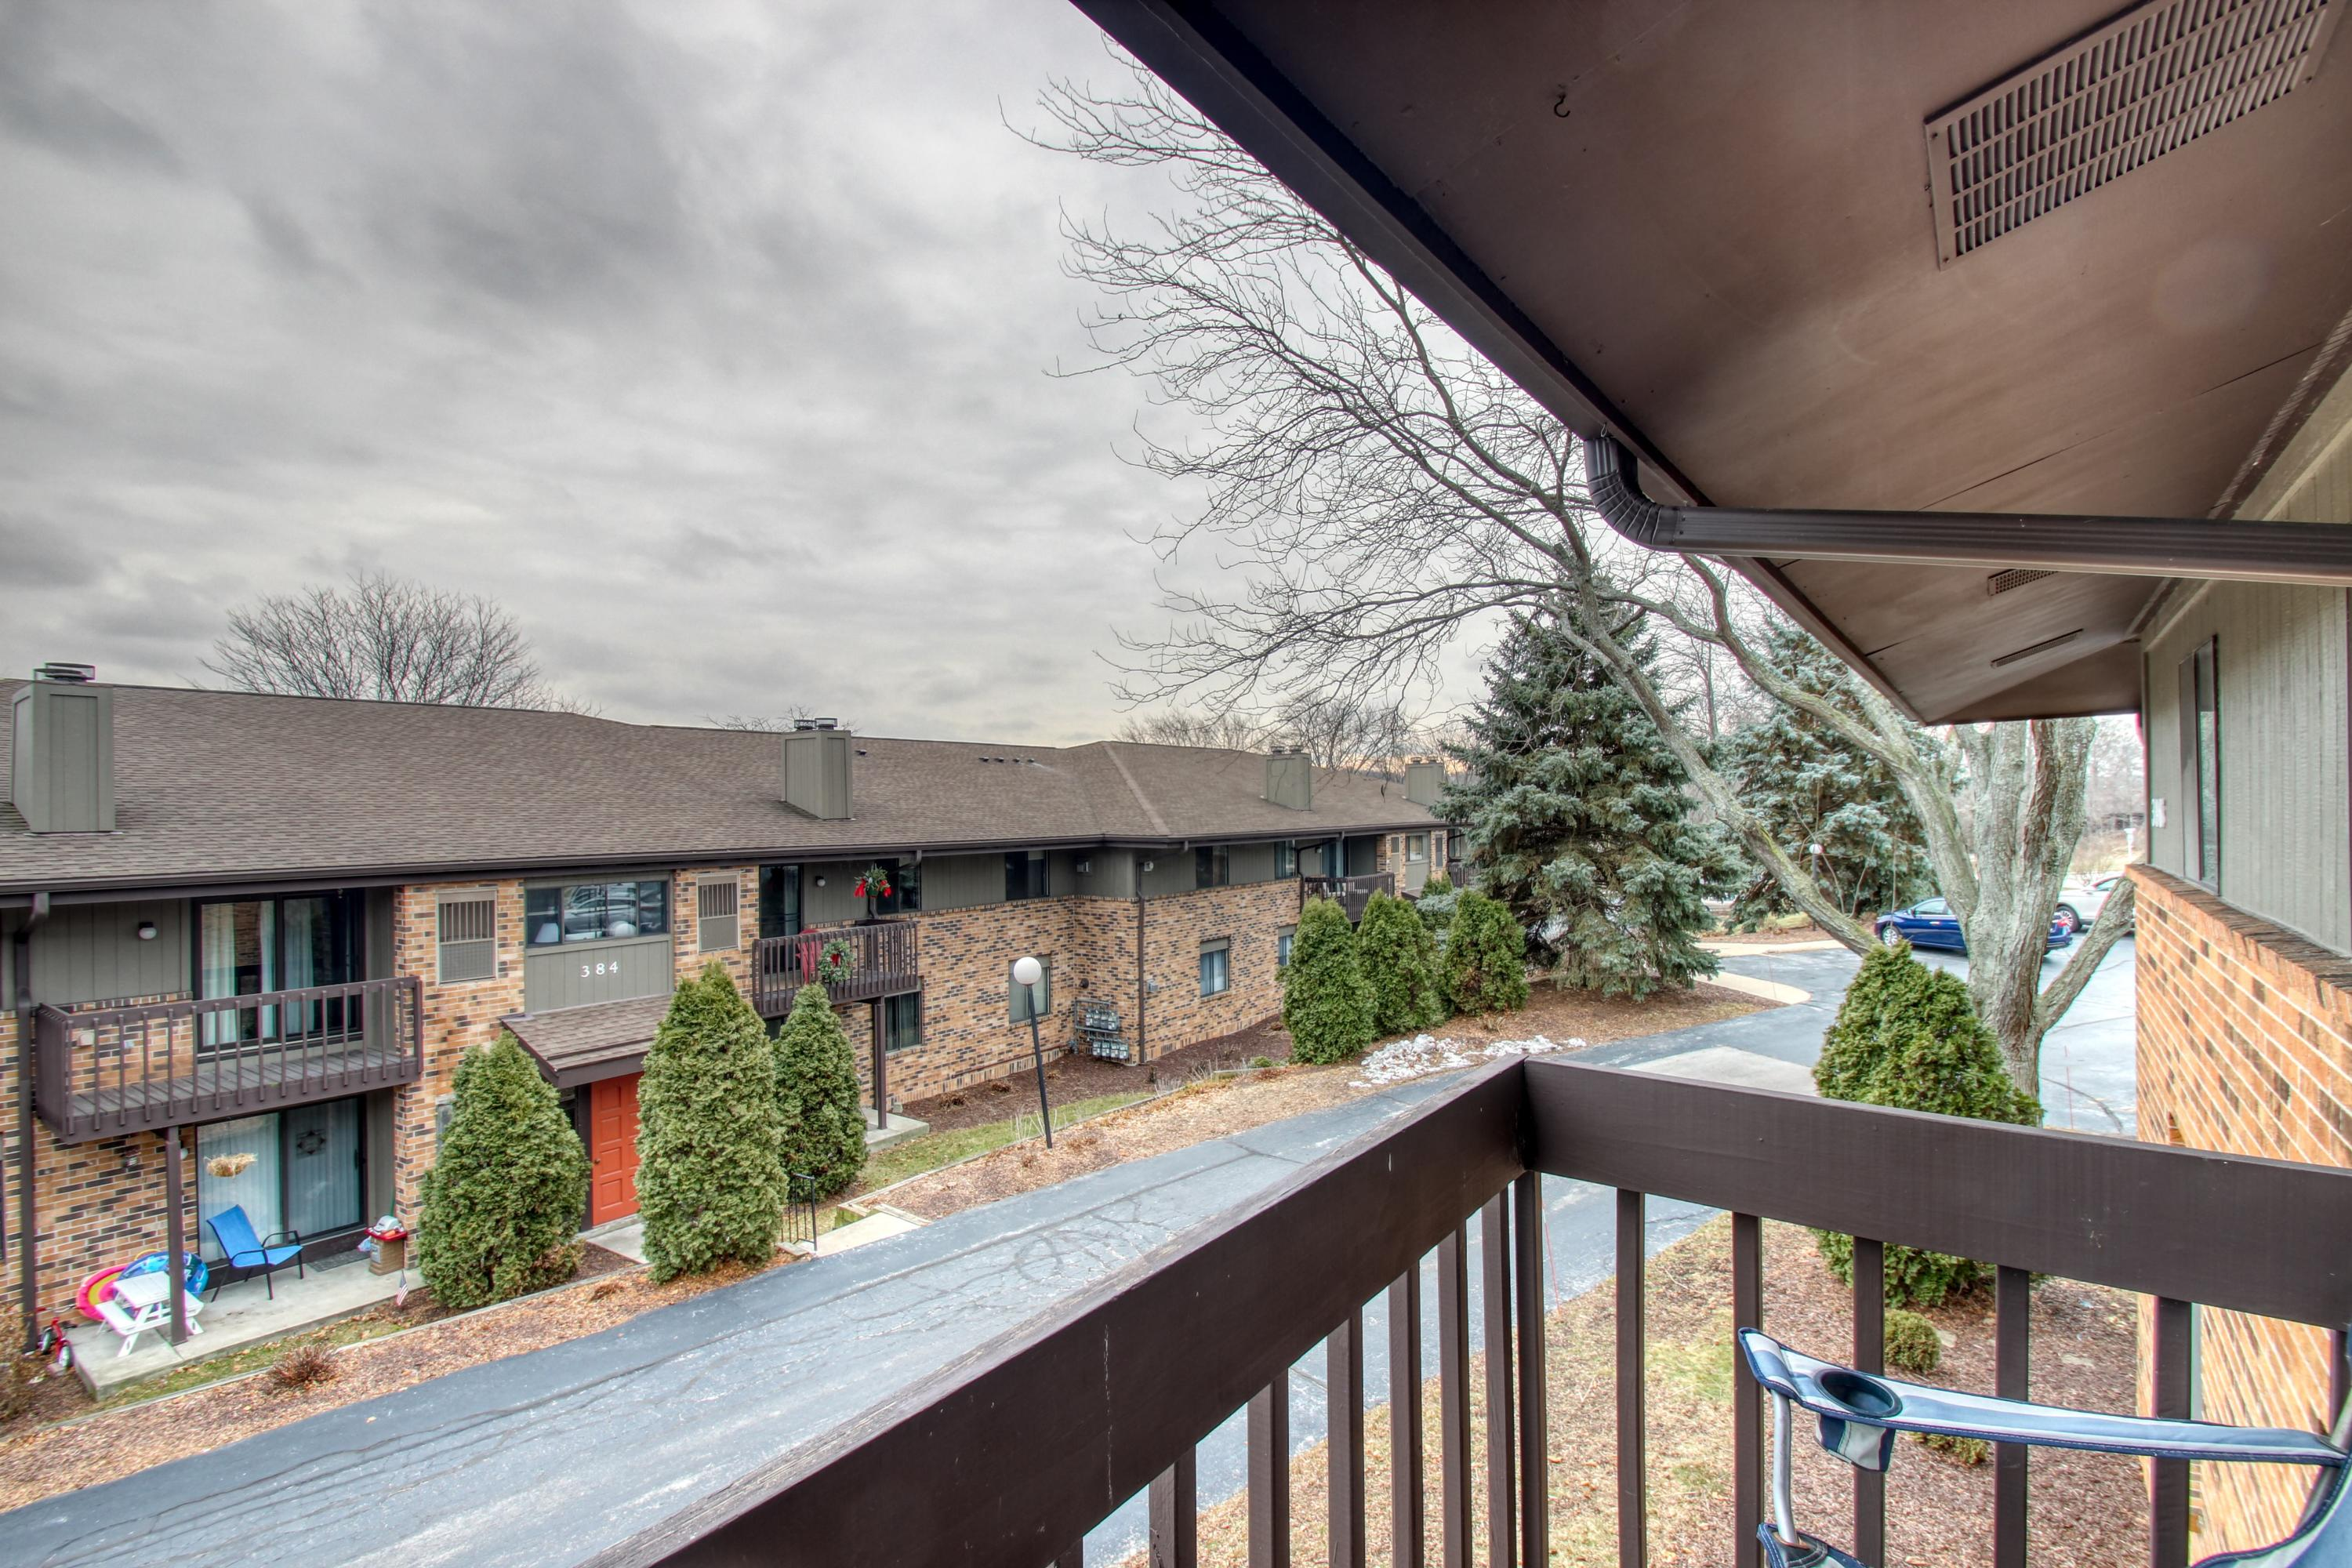 396 Park Hill Dr, Pewaukee, Wisconsin 53072, 2 Bedrooms Bedrooms, ,2 BathroomsBathrooms,Condominiums,For Sale,Park Hill Dr,2,1619276